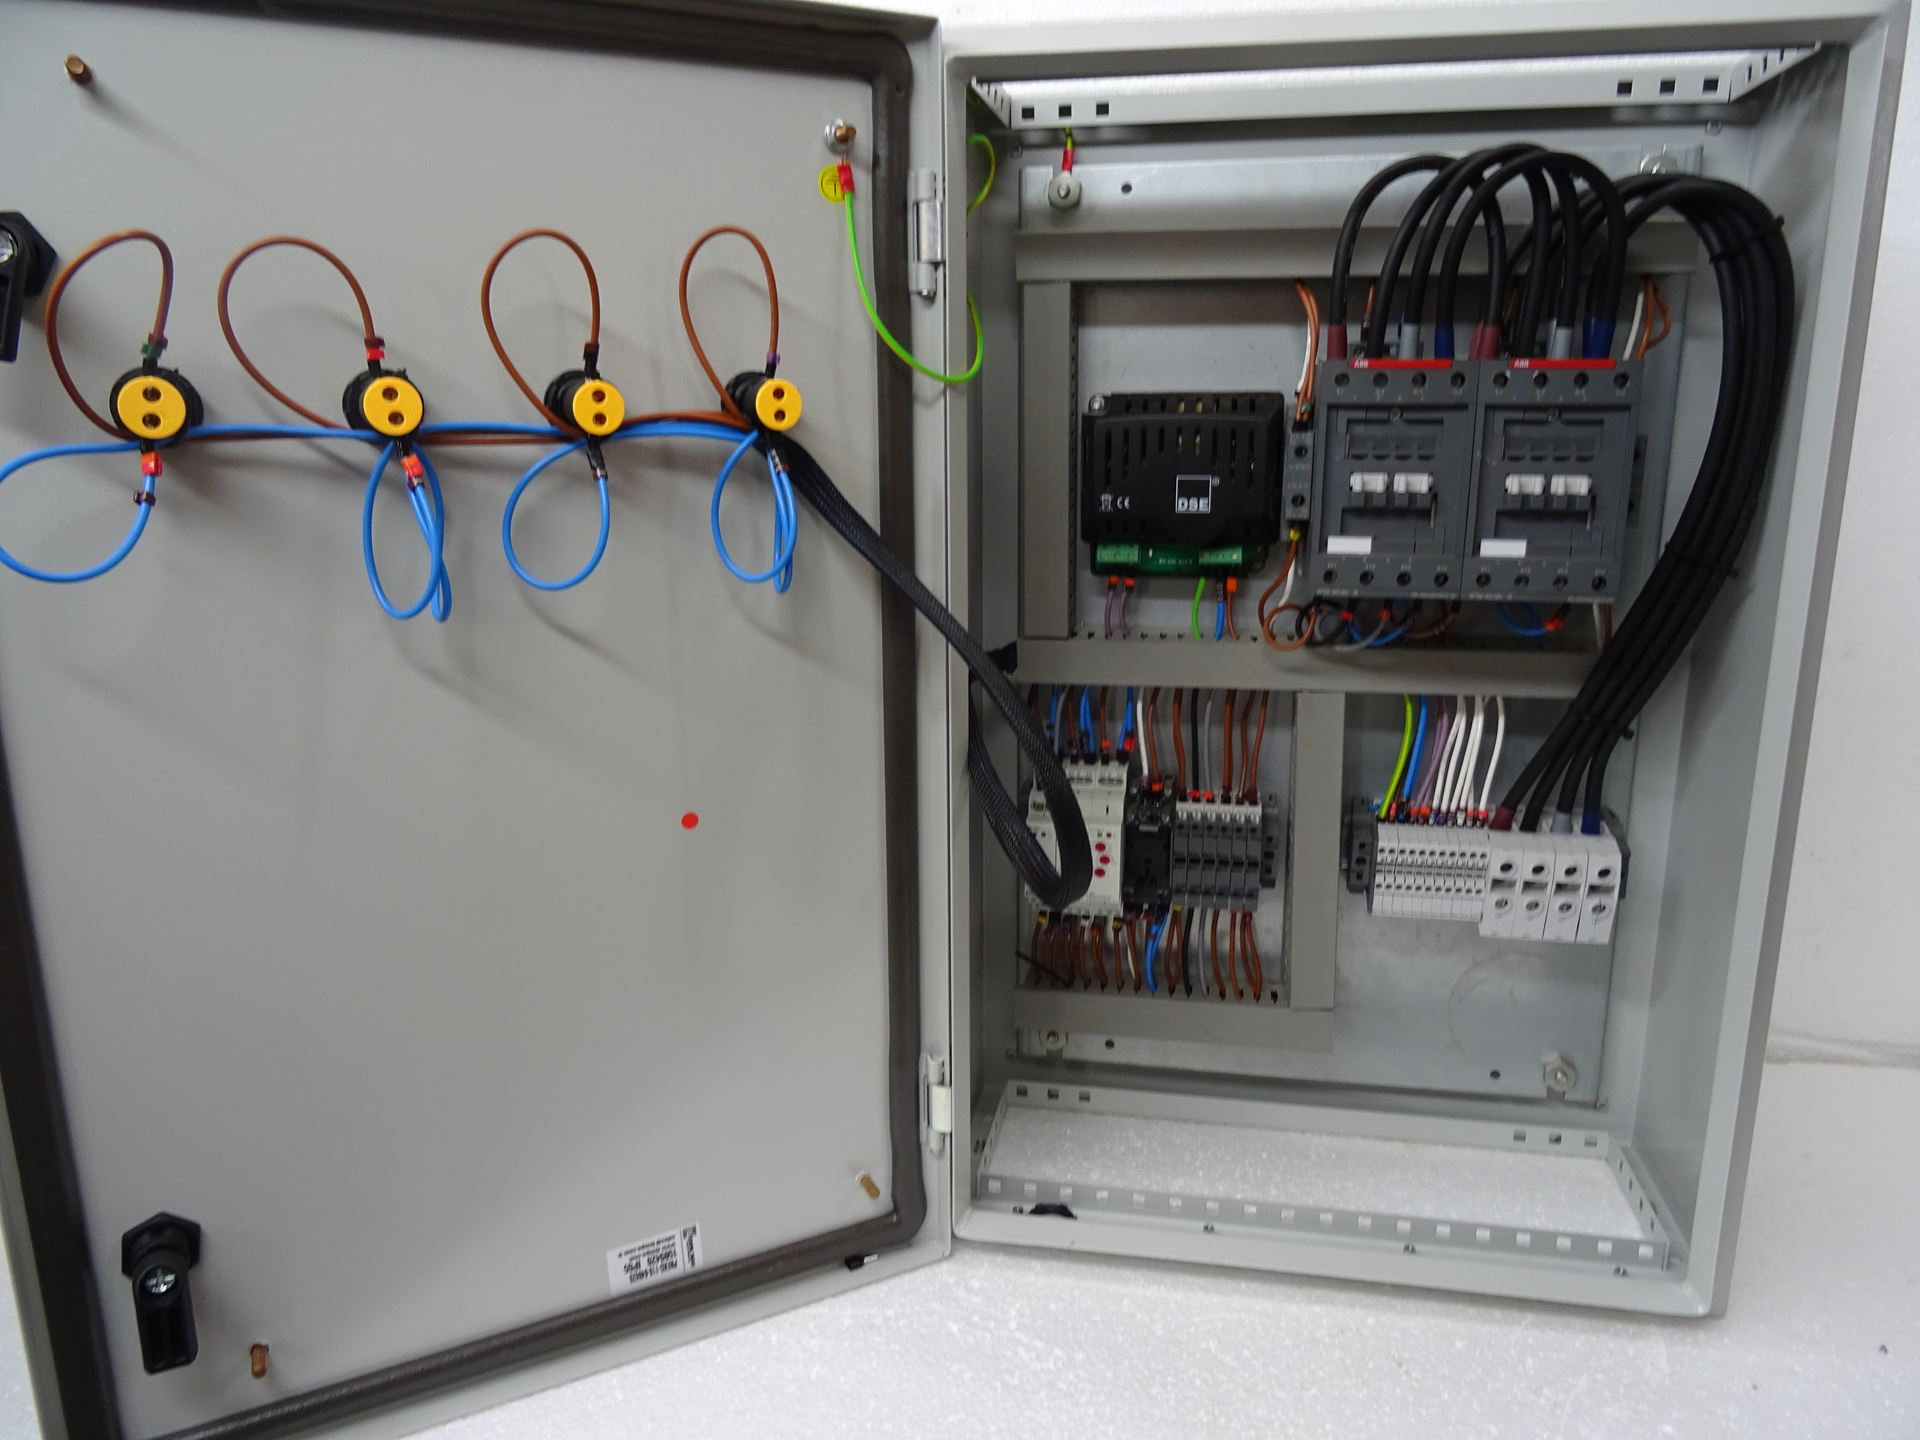 Automatic Transfer Switch Panelautomatic Switches Manual Generator Wiring Diagram Further Remote Picture Of Changeover Ats 125 Amp Abb Single Phase